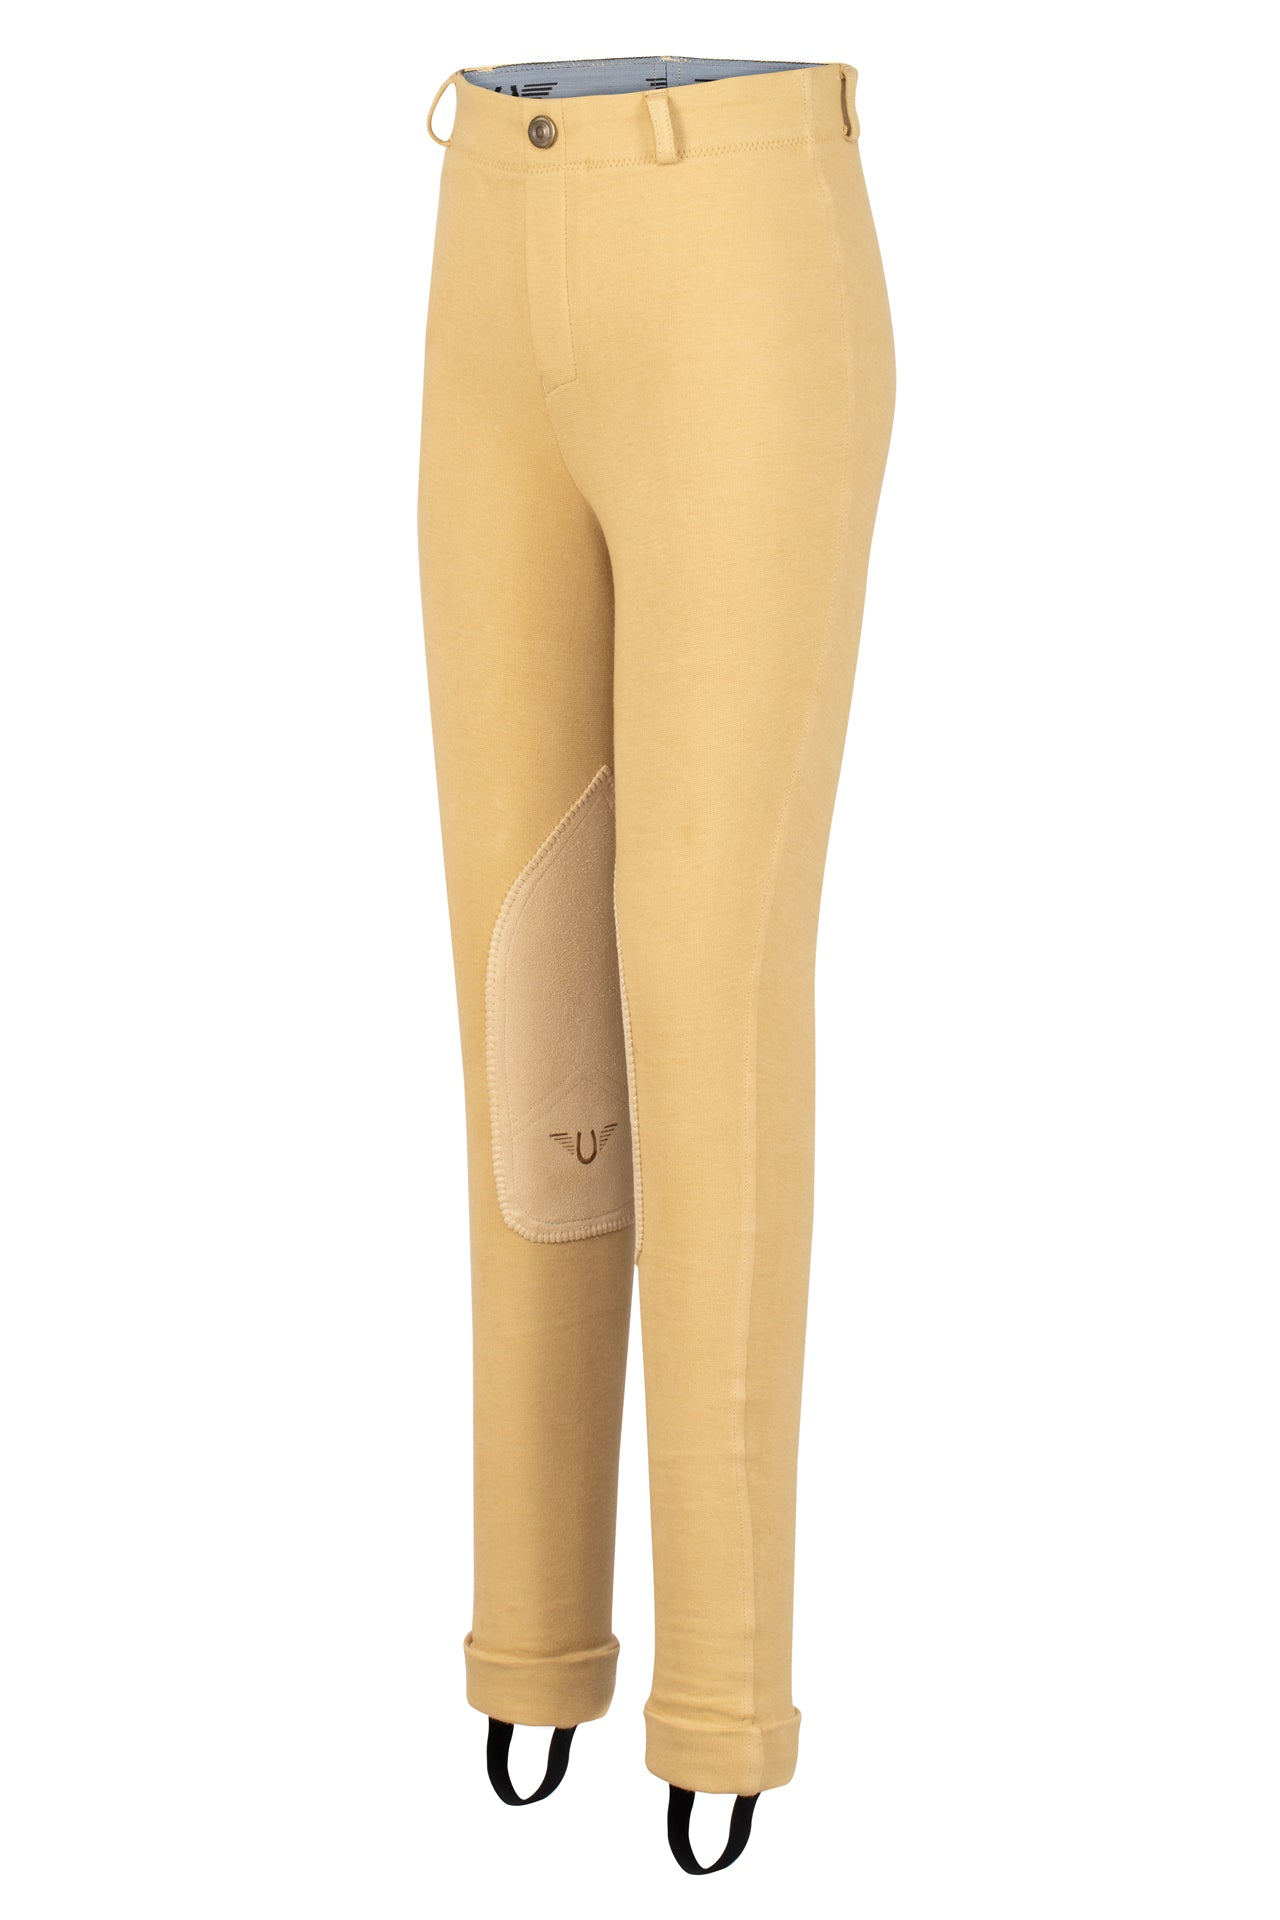 Children's Cotton Pull-On Jods - TuffRider - Breeches.com